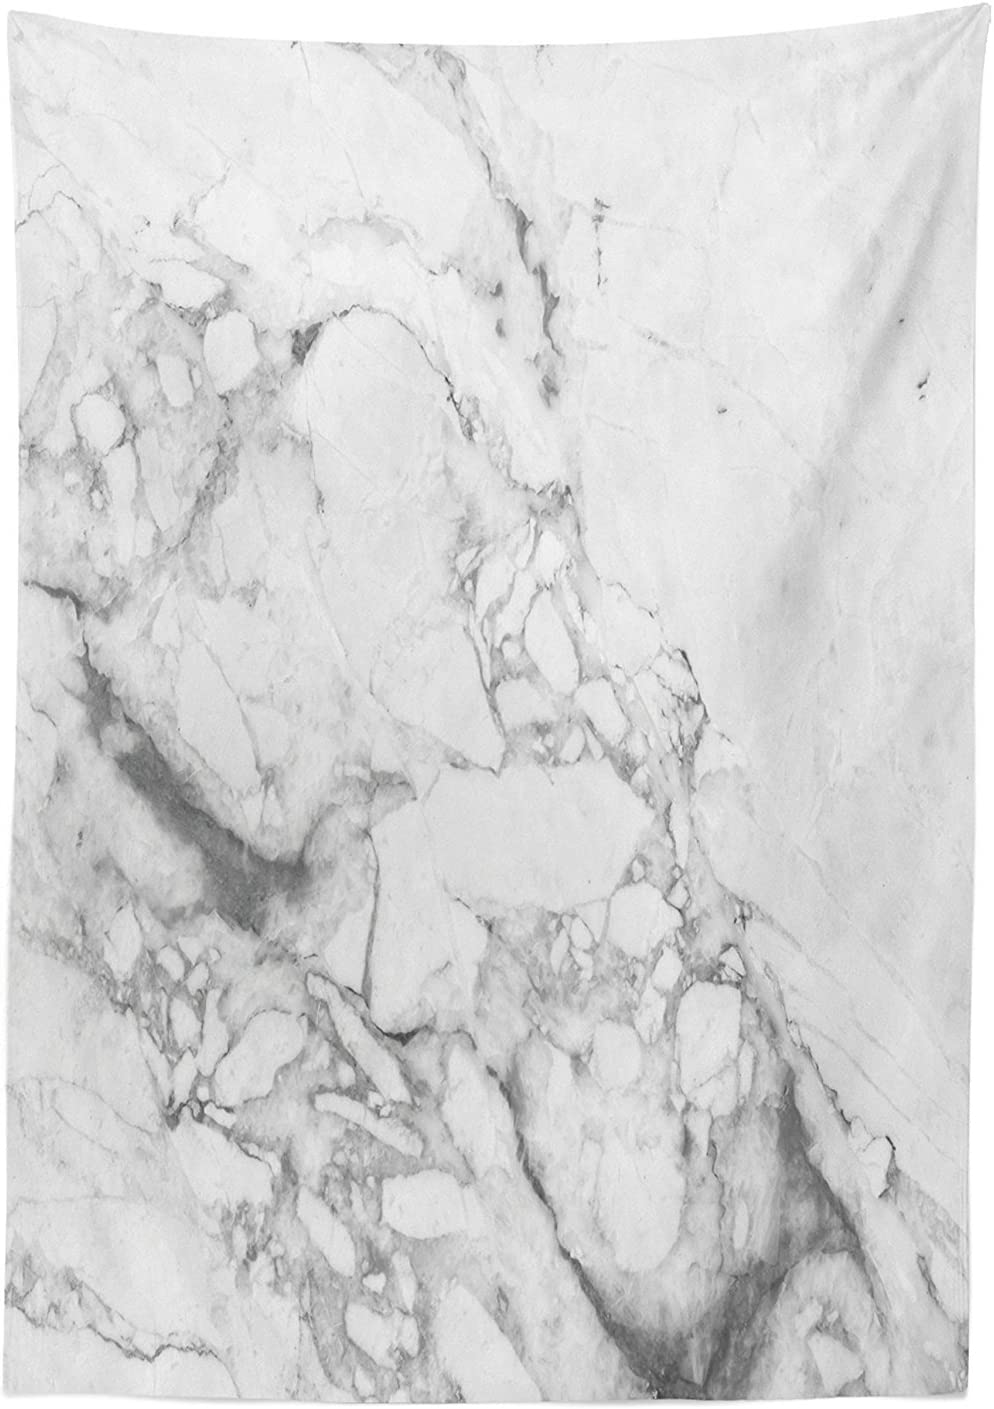 52W X 70L Inches Dining Room Kitchen Rectangular Table Cover White Grey Apartment Decor Tablecloth by Ambesonne Old Fashion Grungy Cultured Marbling Motif Formation Lines Artsy Design